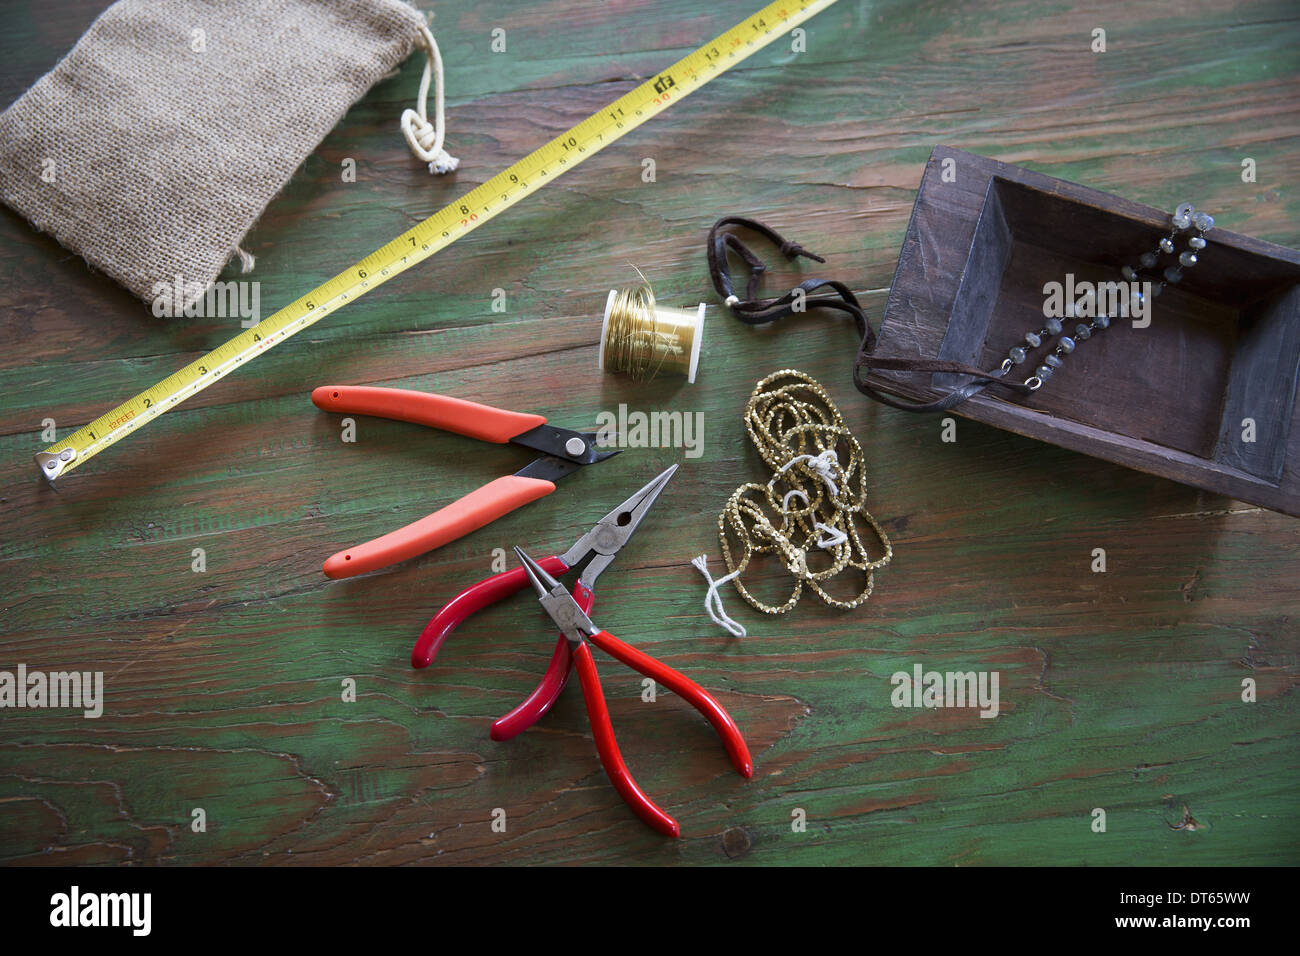 A tabletop with jewellery making equipment. Pliers, thread and a wooden tray, with measuring tape. - Stock Image